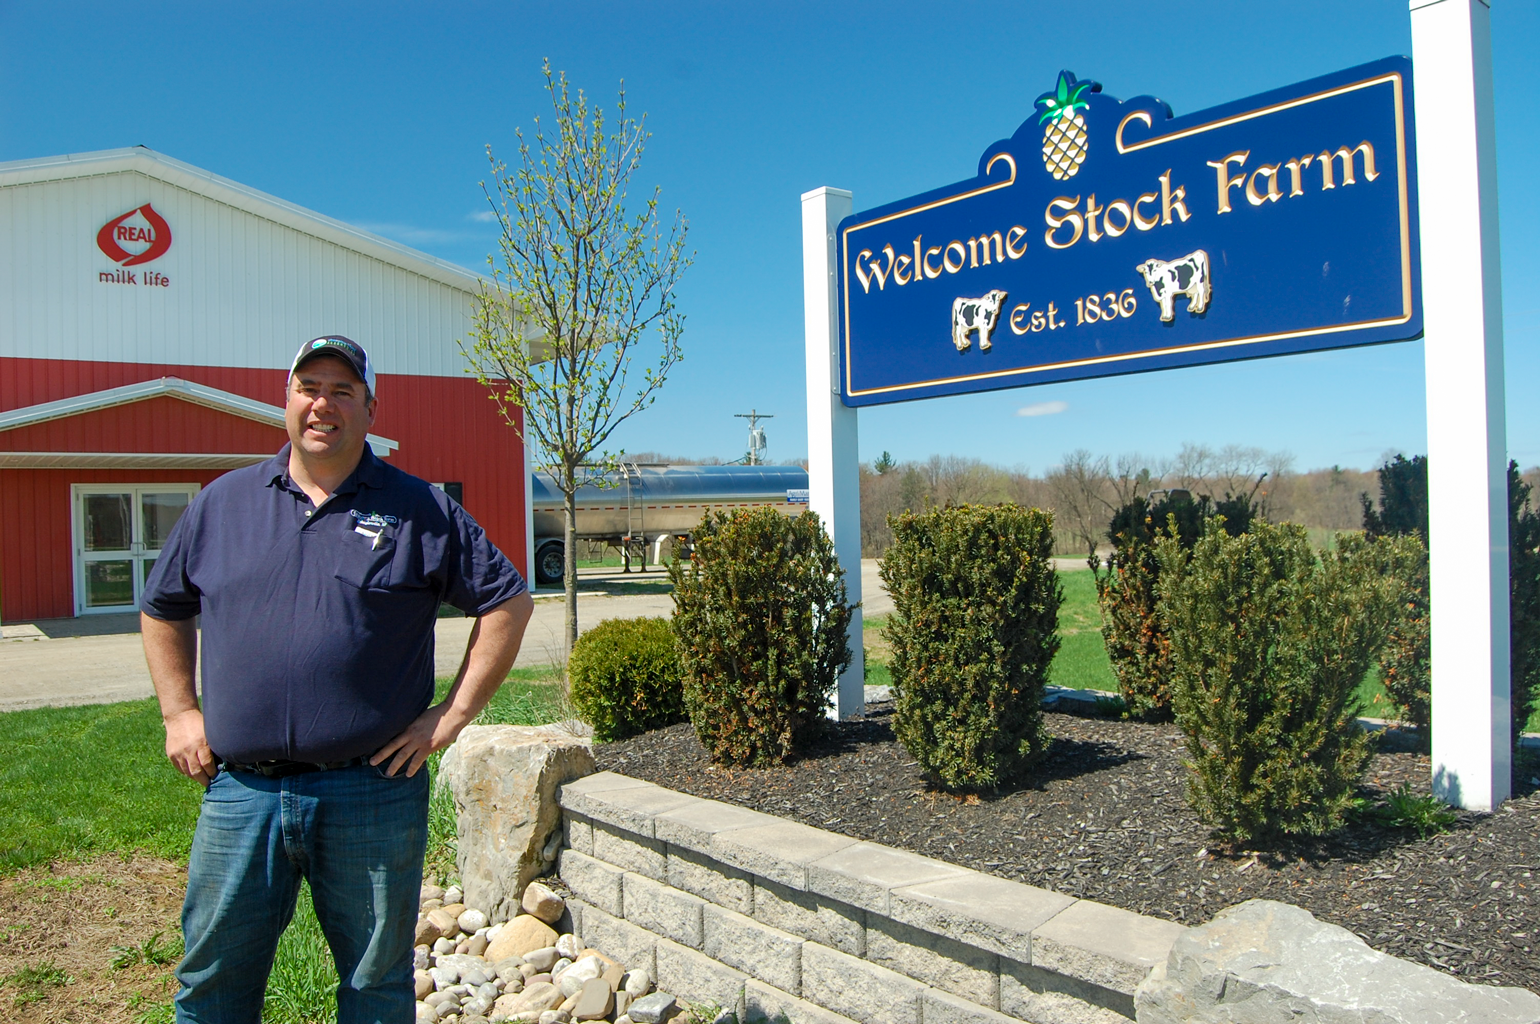 Neil Peck stands outside at his Welcome Stock Farm